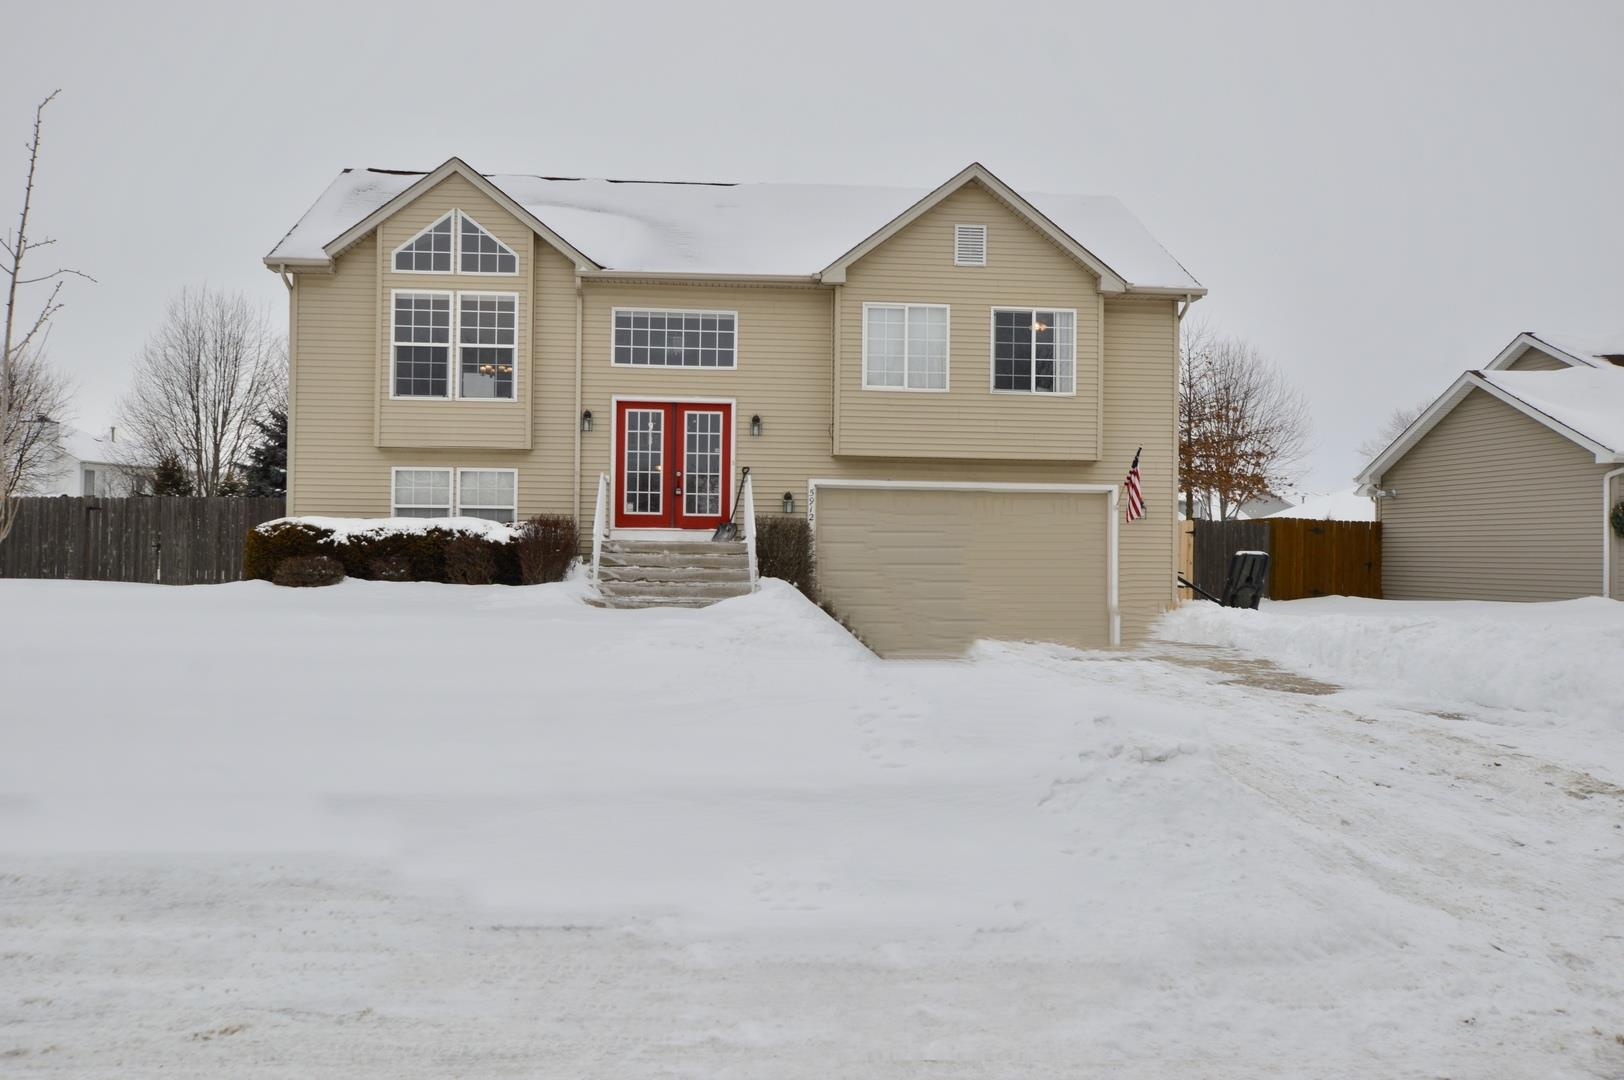 5912 Castlewood Trail, McHenry, IL 60050 - #: 11023157